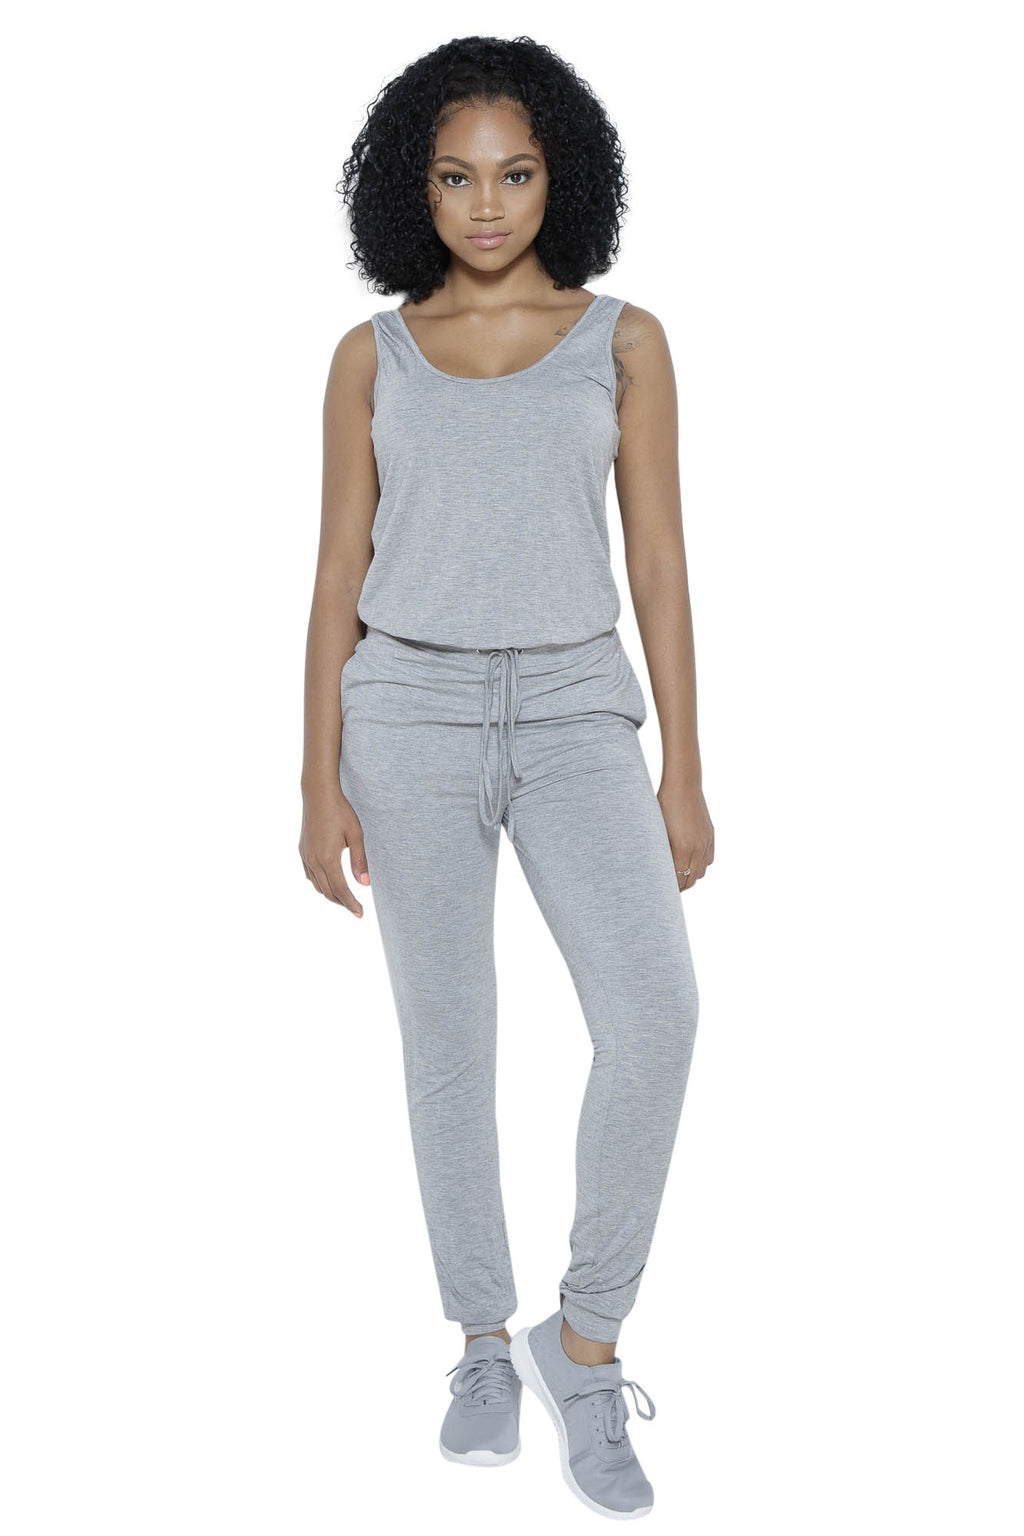 fair-shade - Rochelle Jumpsuit in Grey - Clothing